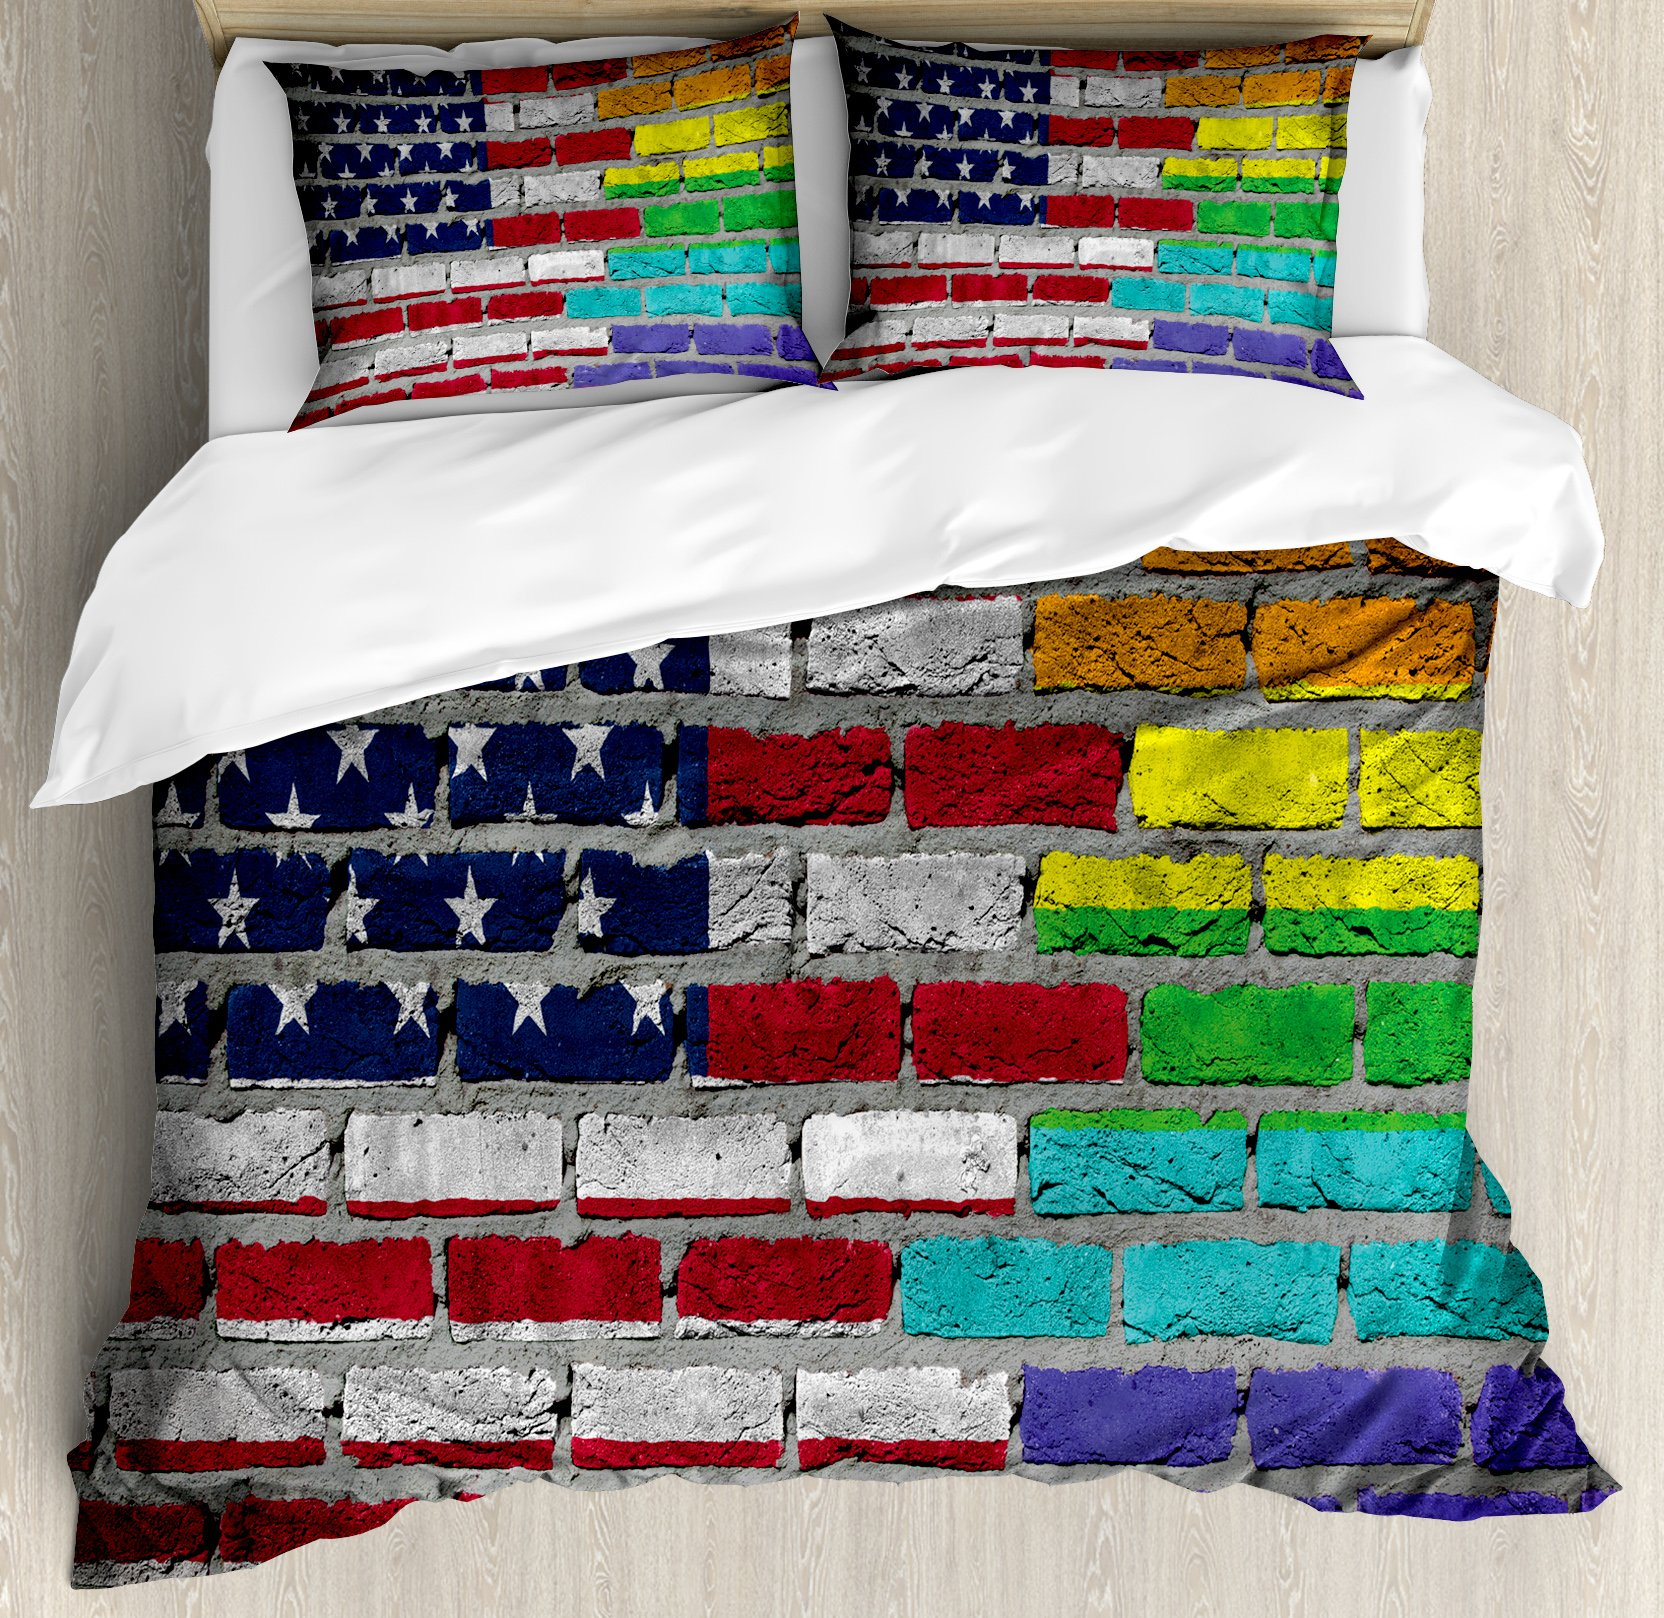 Pride Decorations Queen Size Duvet Cover Set by Ambesonne, Grunge Dark Brick Wall with American and Rainbow Flag Painted Together, Decorative 3 Piece Bedding Set with 2 Pillow Shams, Multicolor by Ambesonne